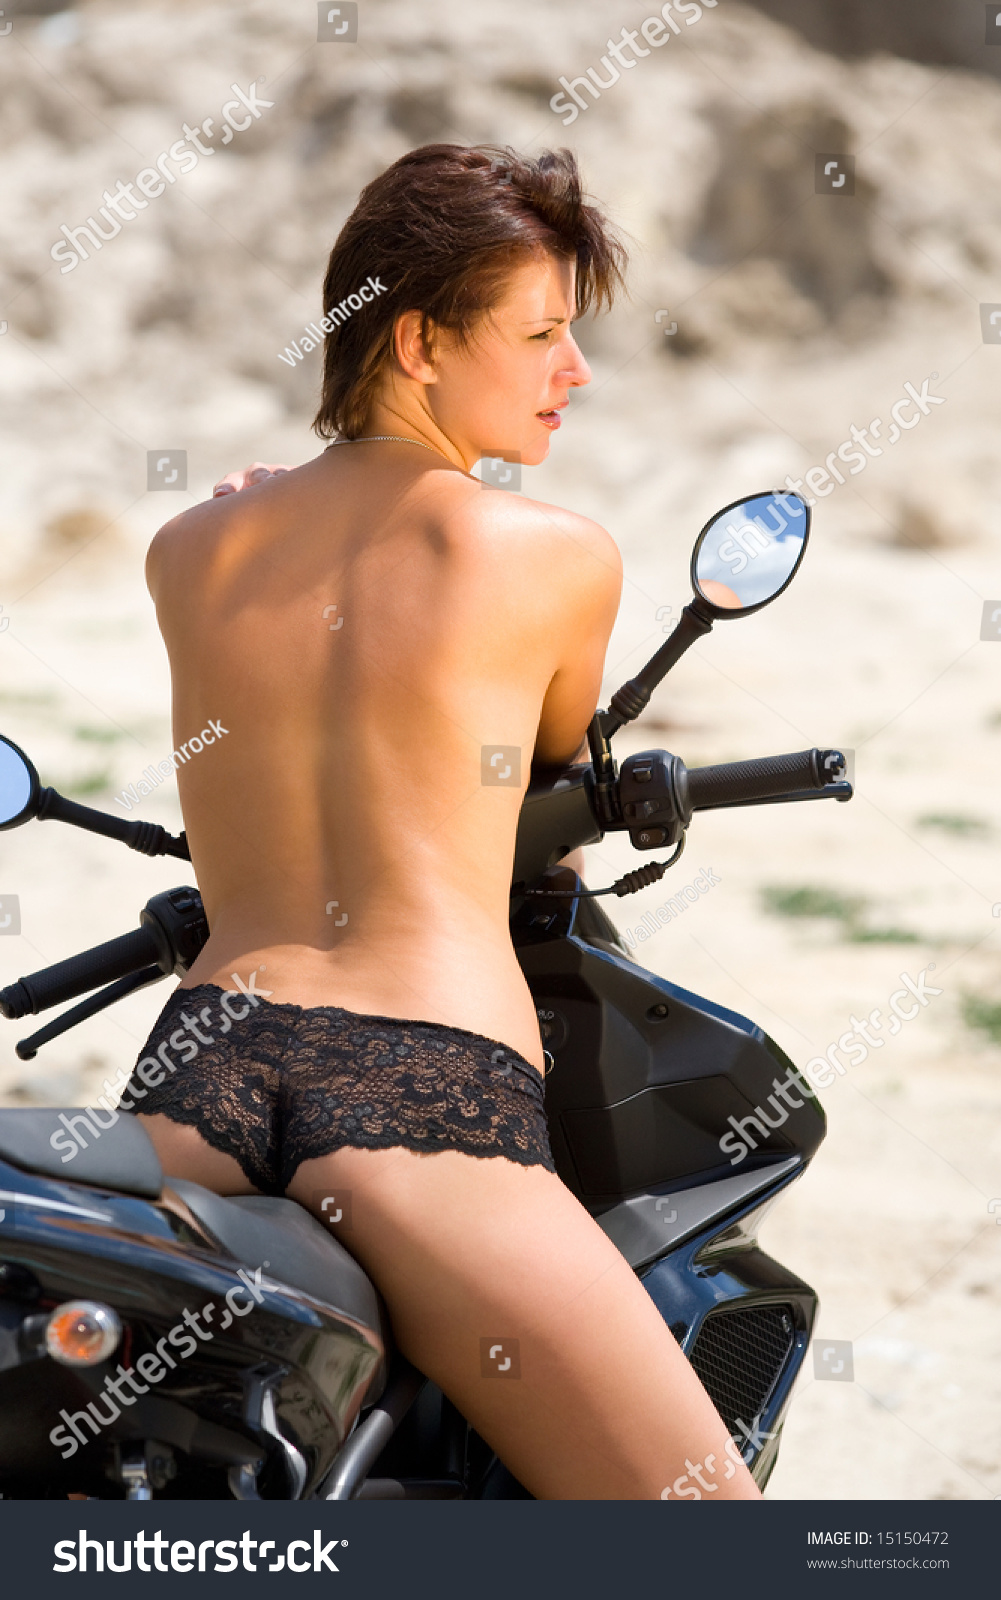 You are Young biker chick naked can